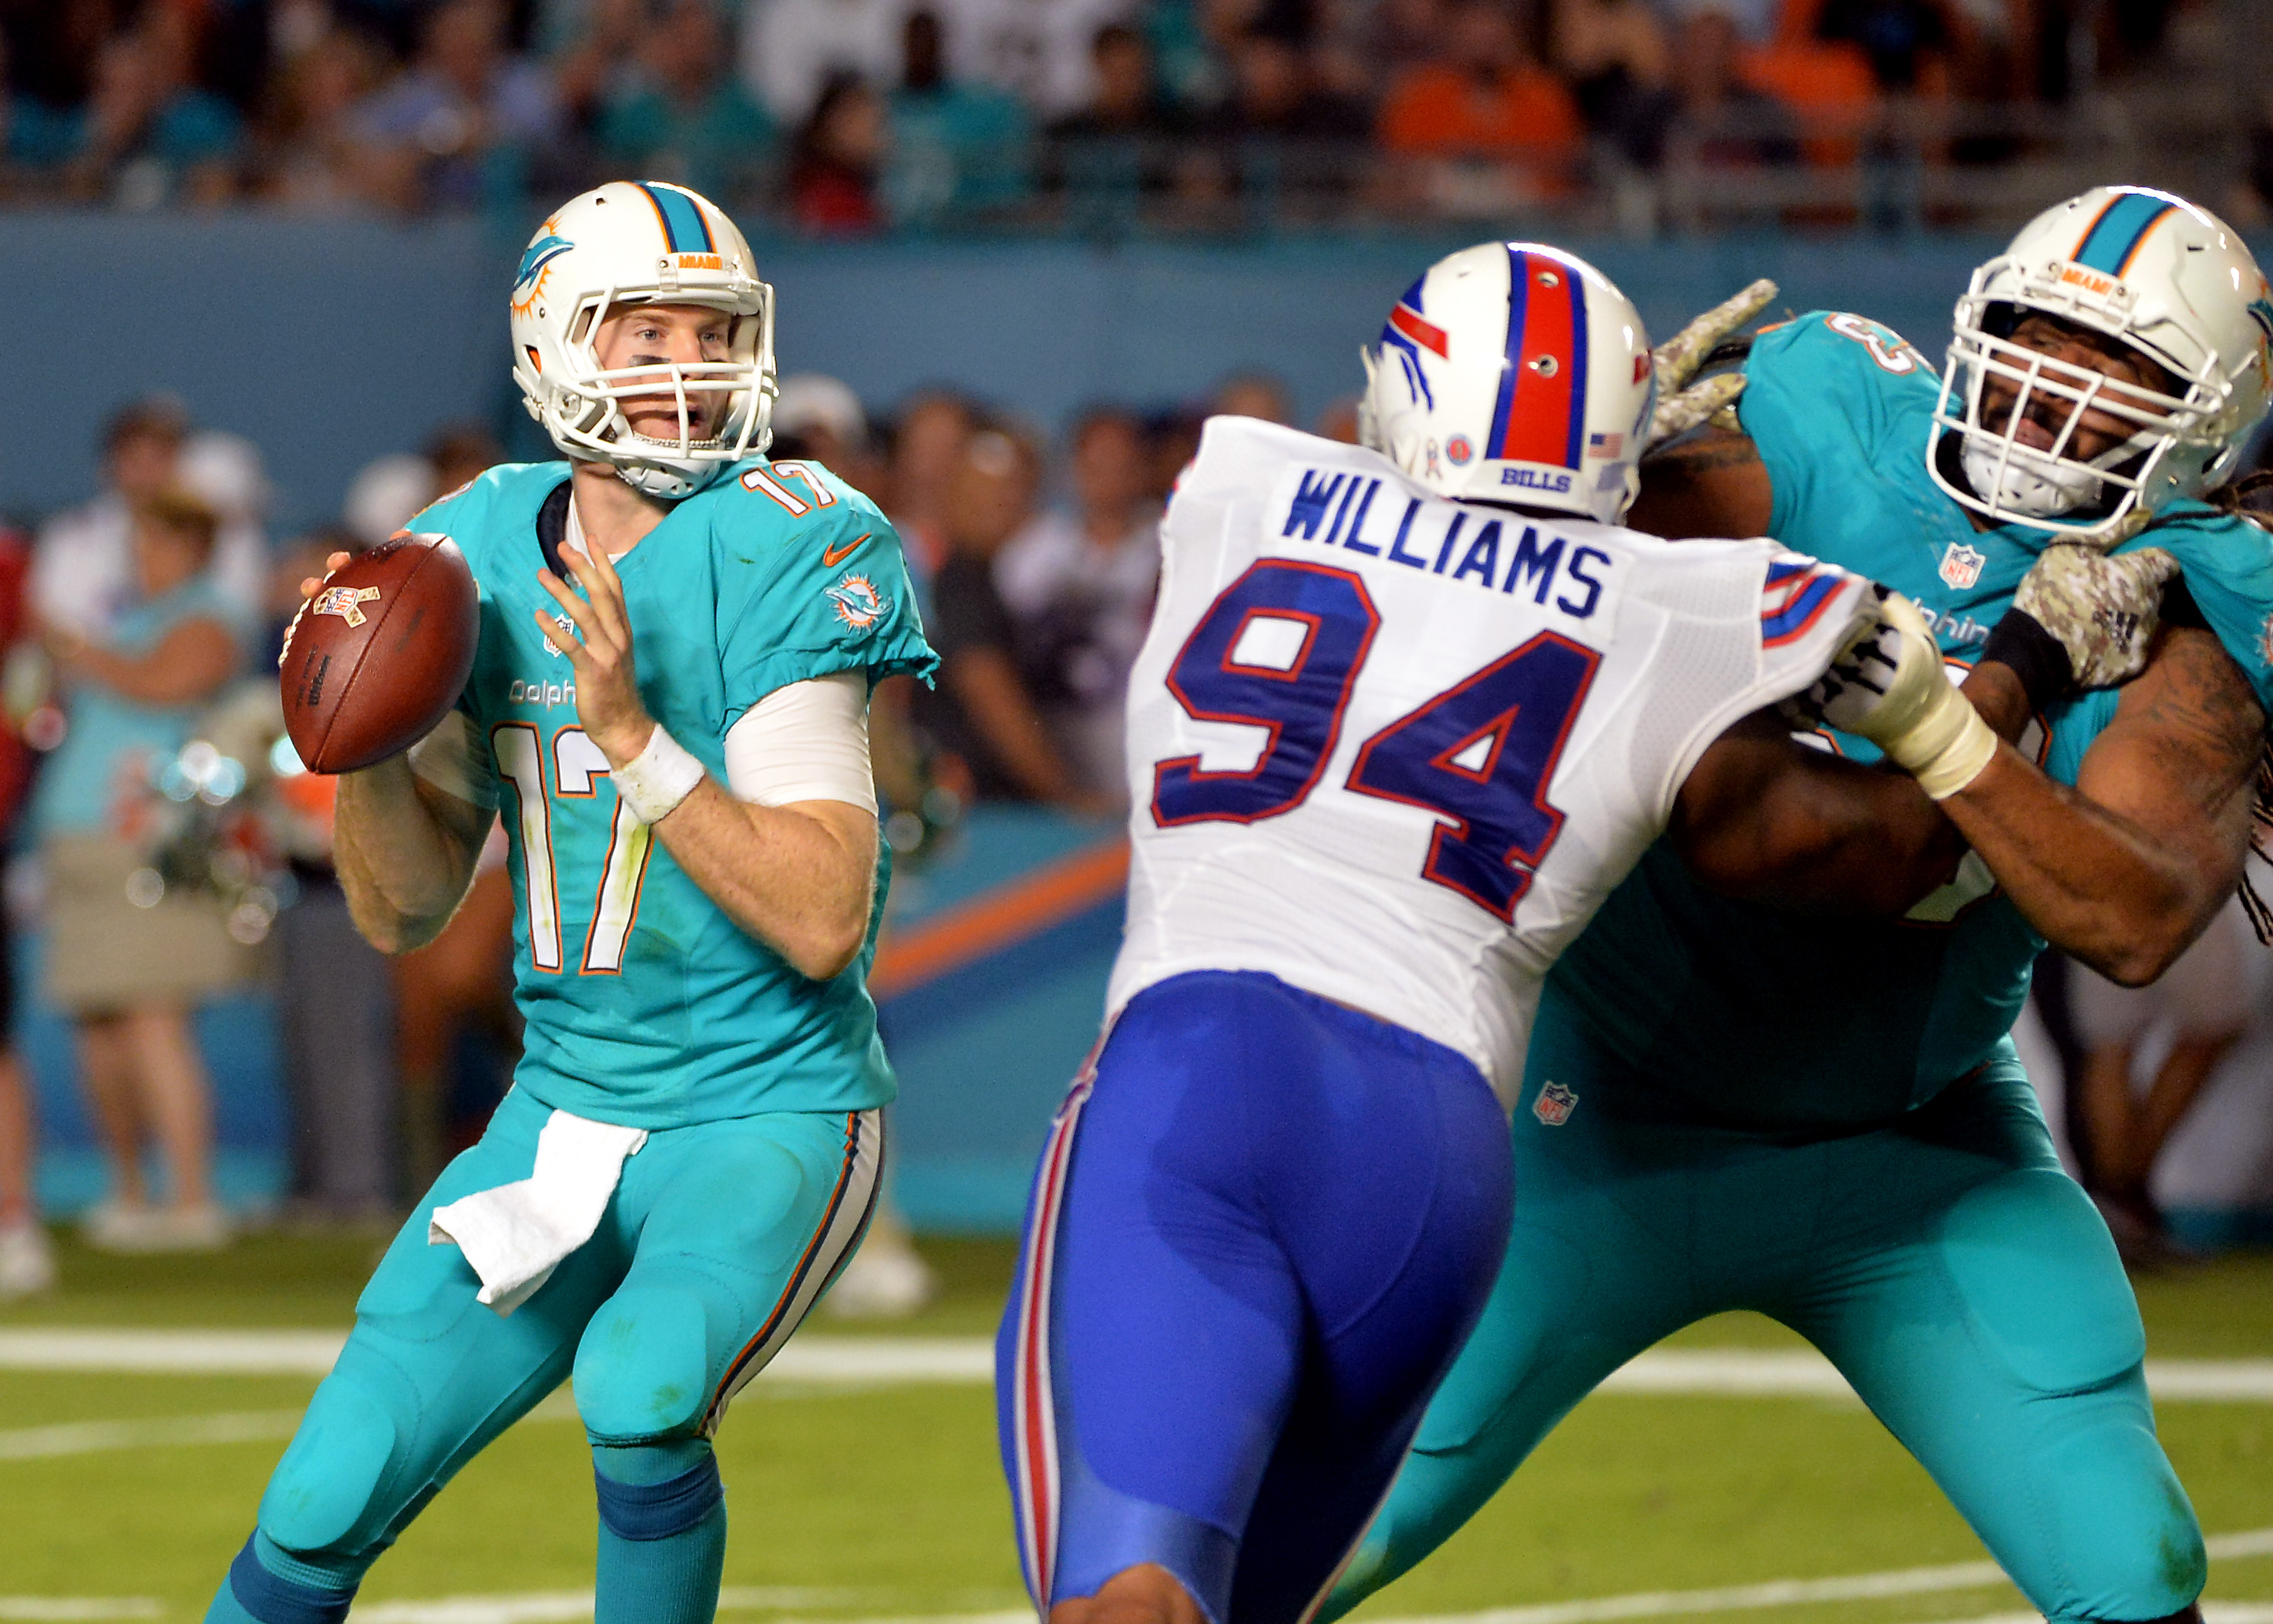 Dolphins QB Ryan Tannehill (17) and Bills OLB Mario Williams (94) hope to emerge with a 2-1 record after their Sunday showdown.(Steve Mitchell, USA TODAY Sports)